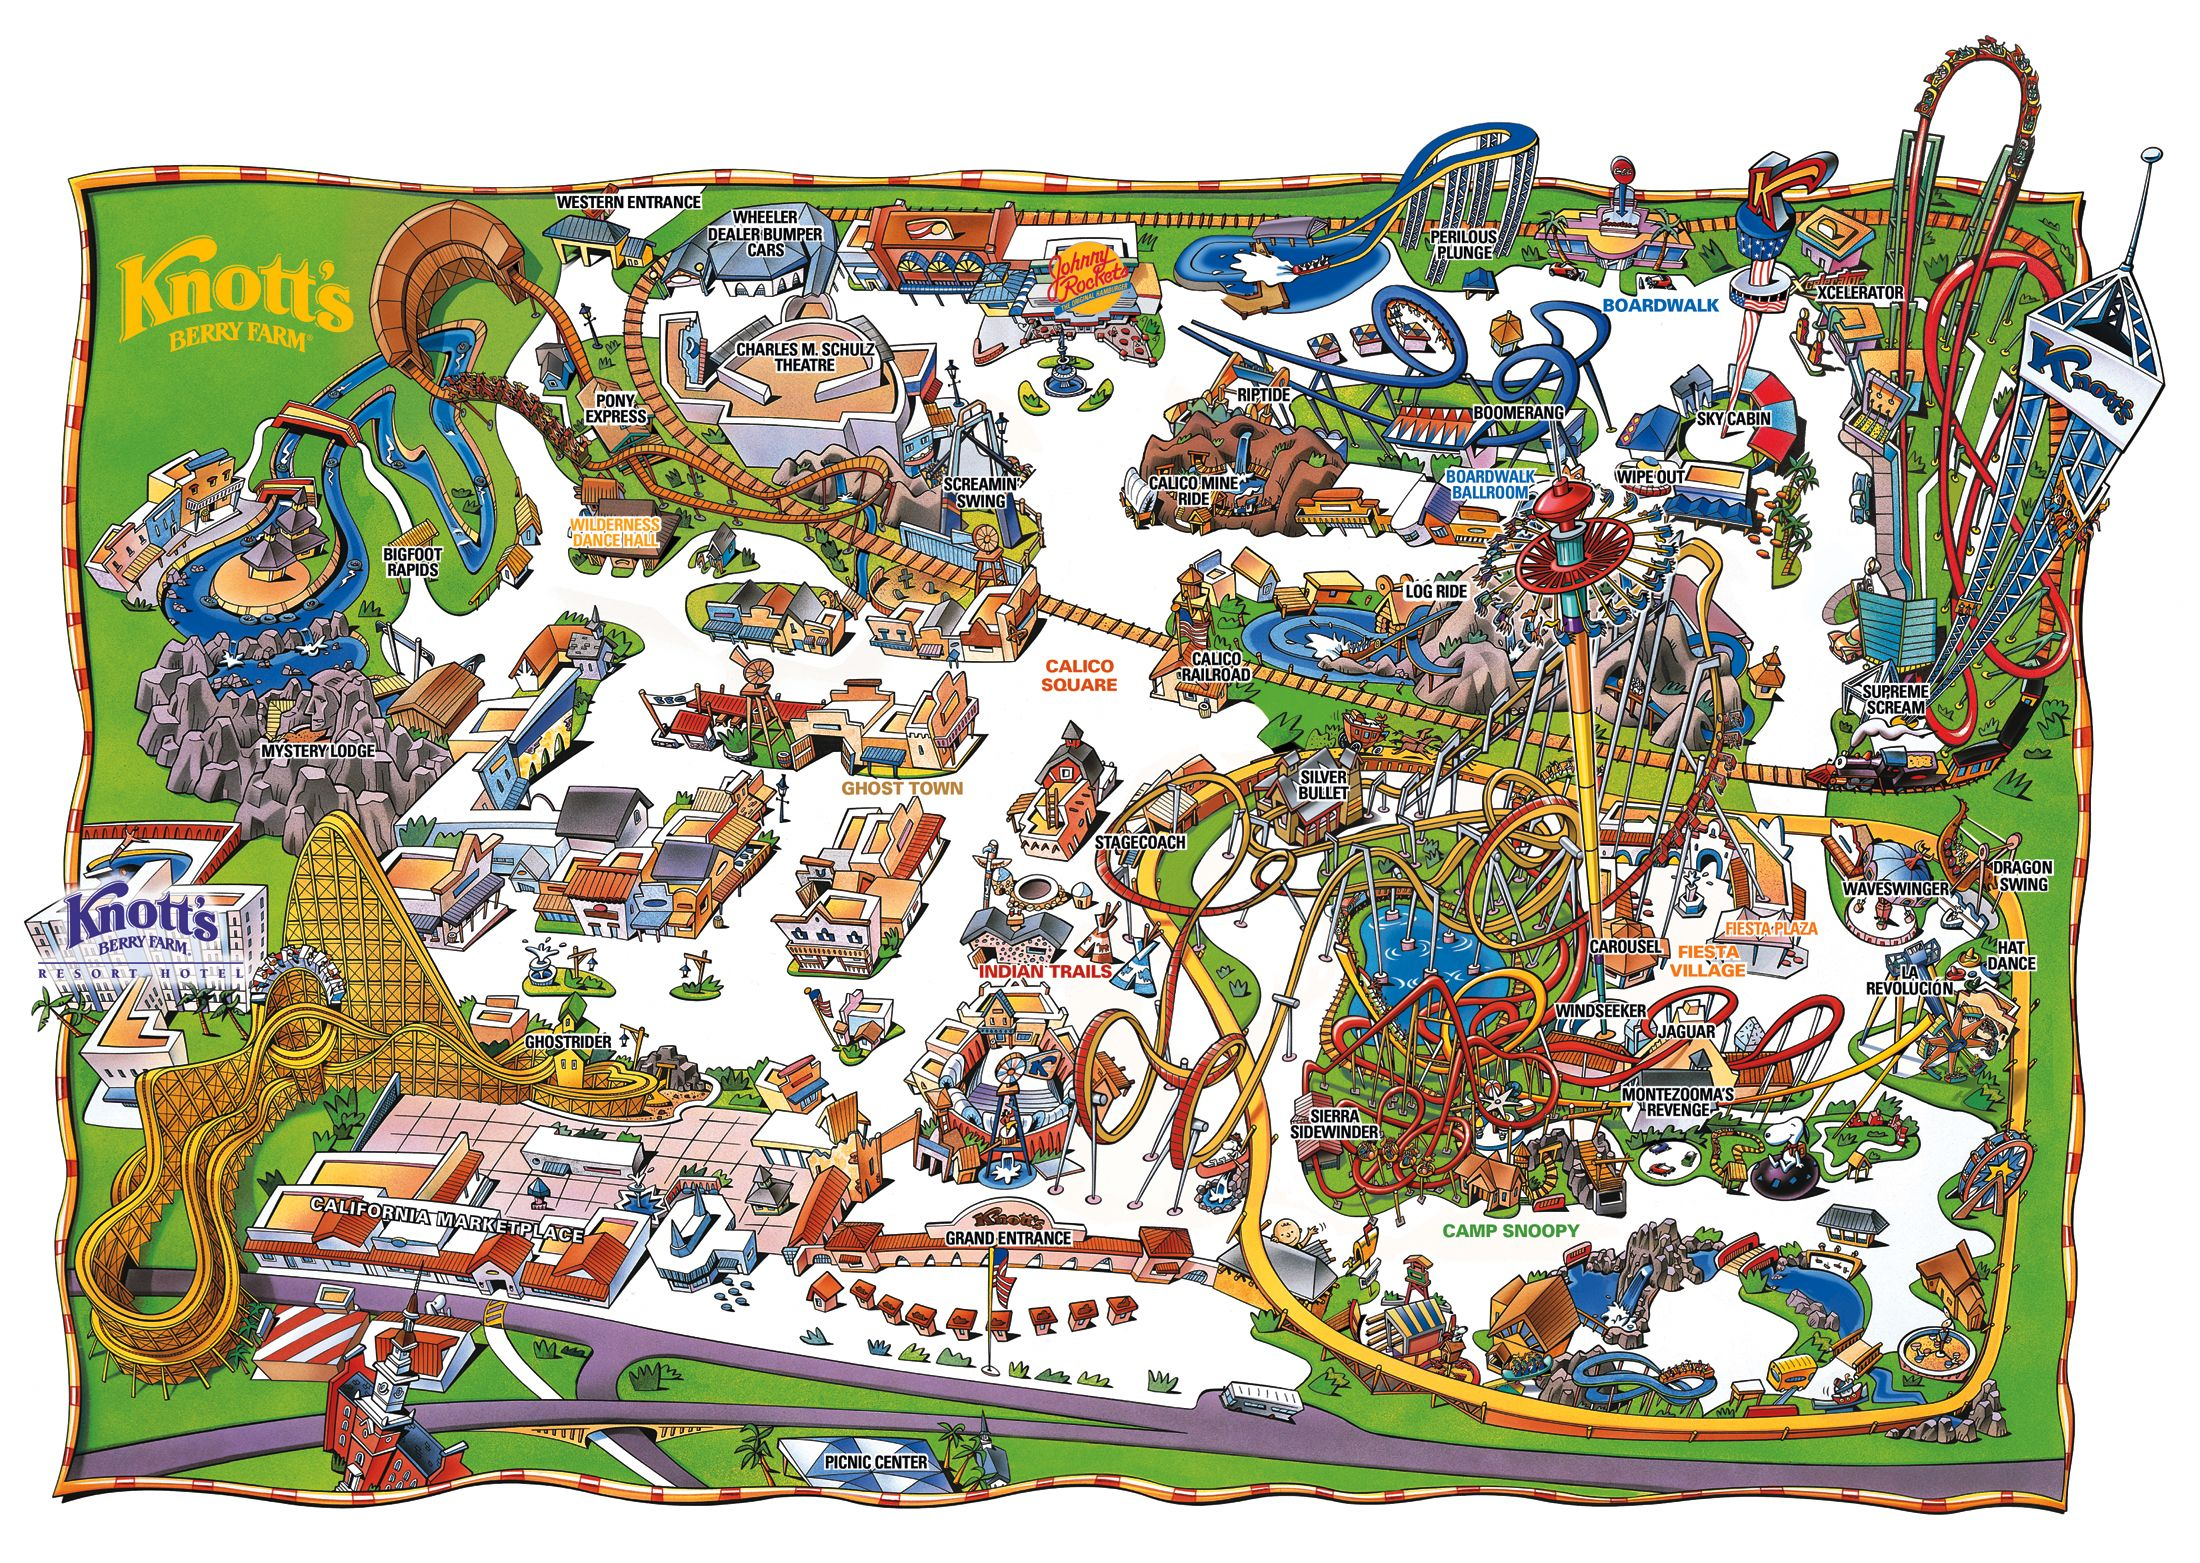 Park Map | Knott's Berry Farm, Buena Park, CA | rides in 2019 ... Knott S Berry Farm Map Official on disneyland map, oceans of fun map, legoland map, universal studios hollywood map, pink's hot dogs map, mt. olympus water & theme park map, kings dominion map, adventure city map, cedar point map, carowinds map, kings island map, ghost town in the sky map, california adventure map, magic kingdom map, kentucky kingdom map, islands of adventure map, wonderland park map, magic mountain map, canada's wonderland map, six flags map,